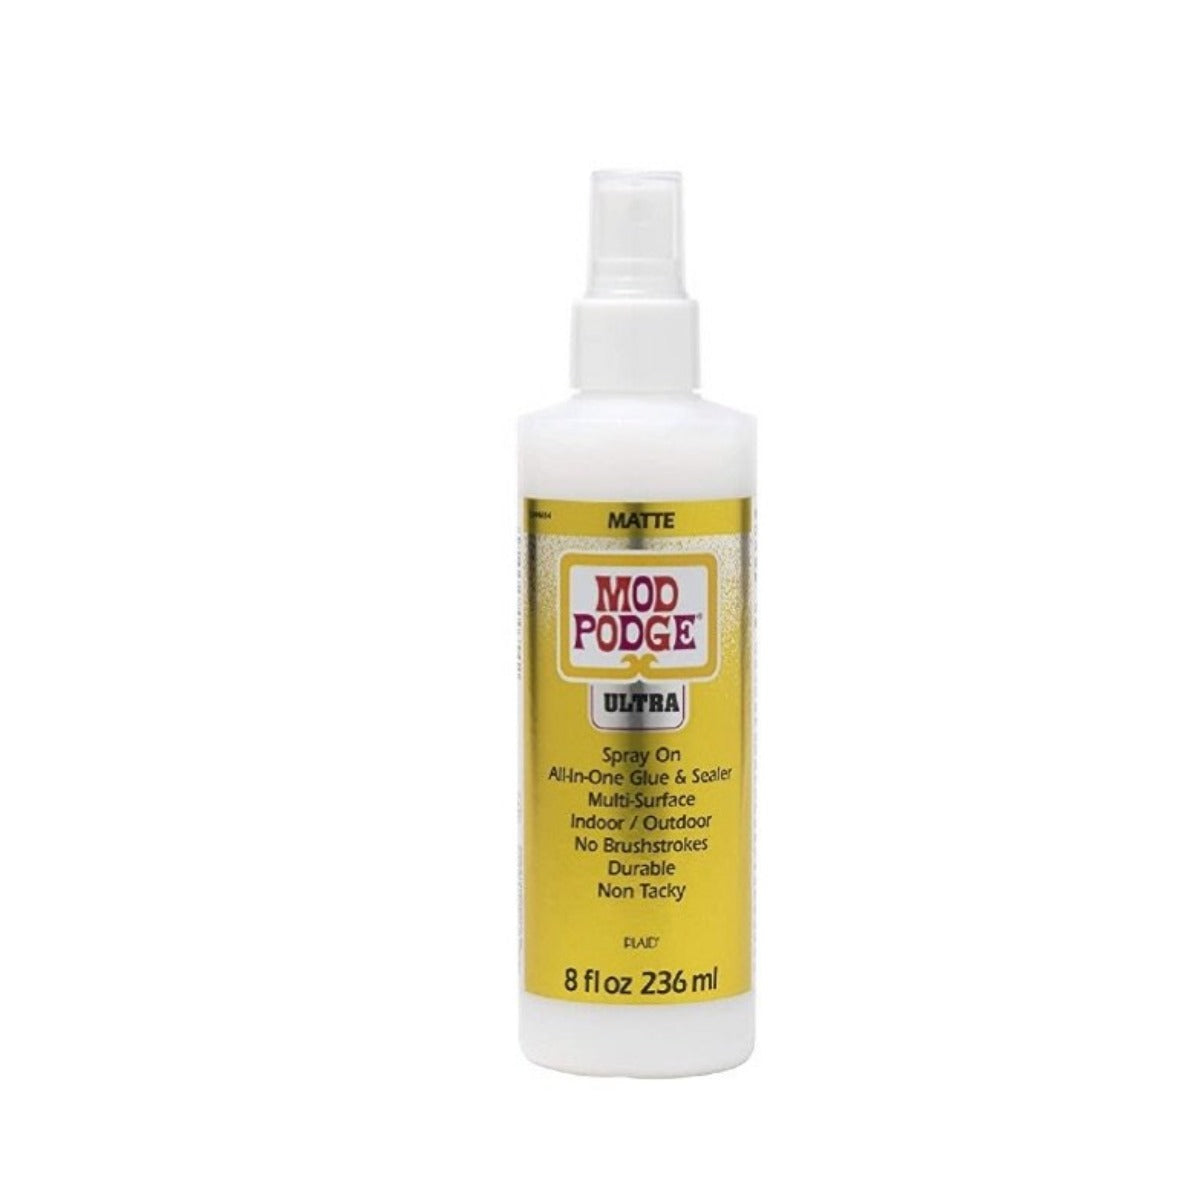 Mod Podge Matte Spray on all in one Glue & Sealer